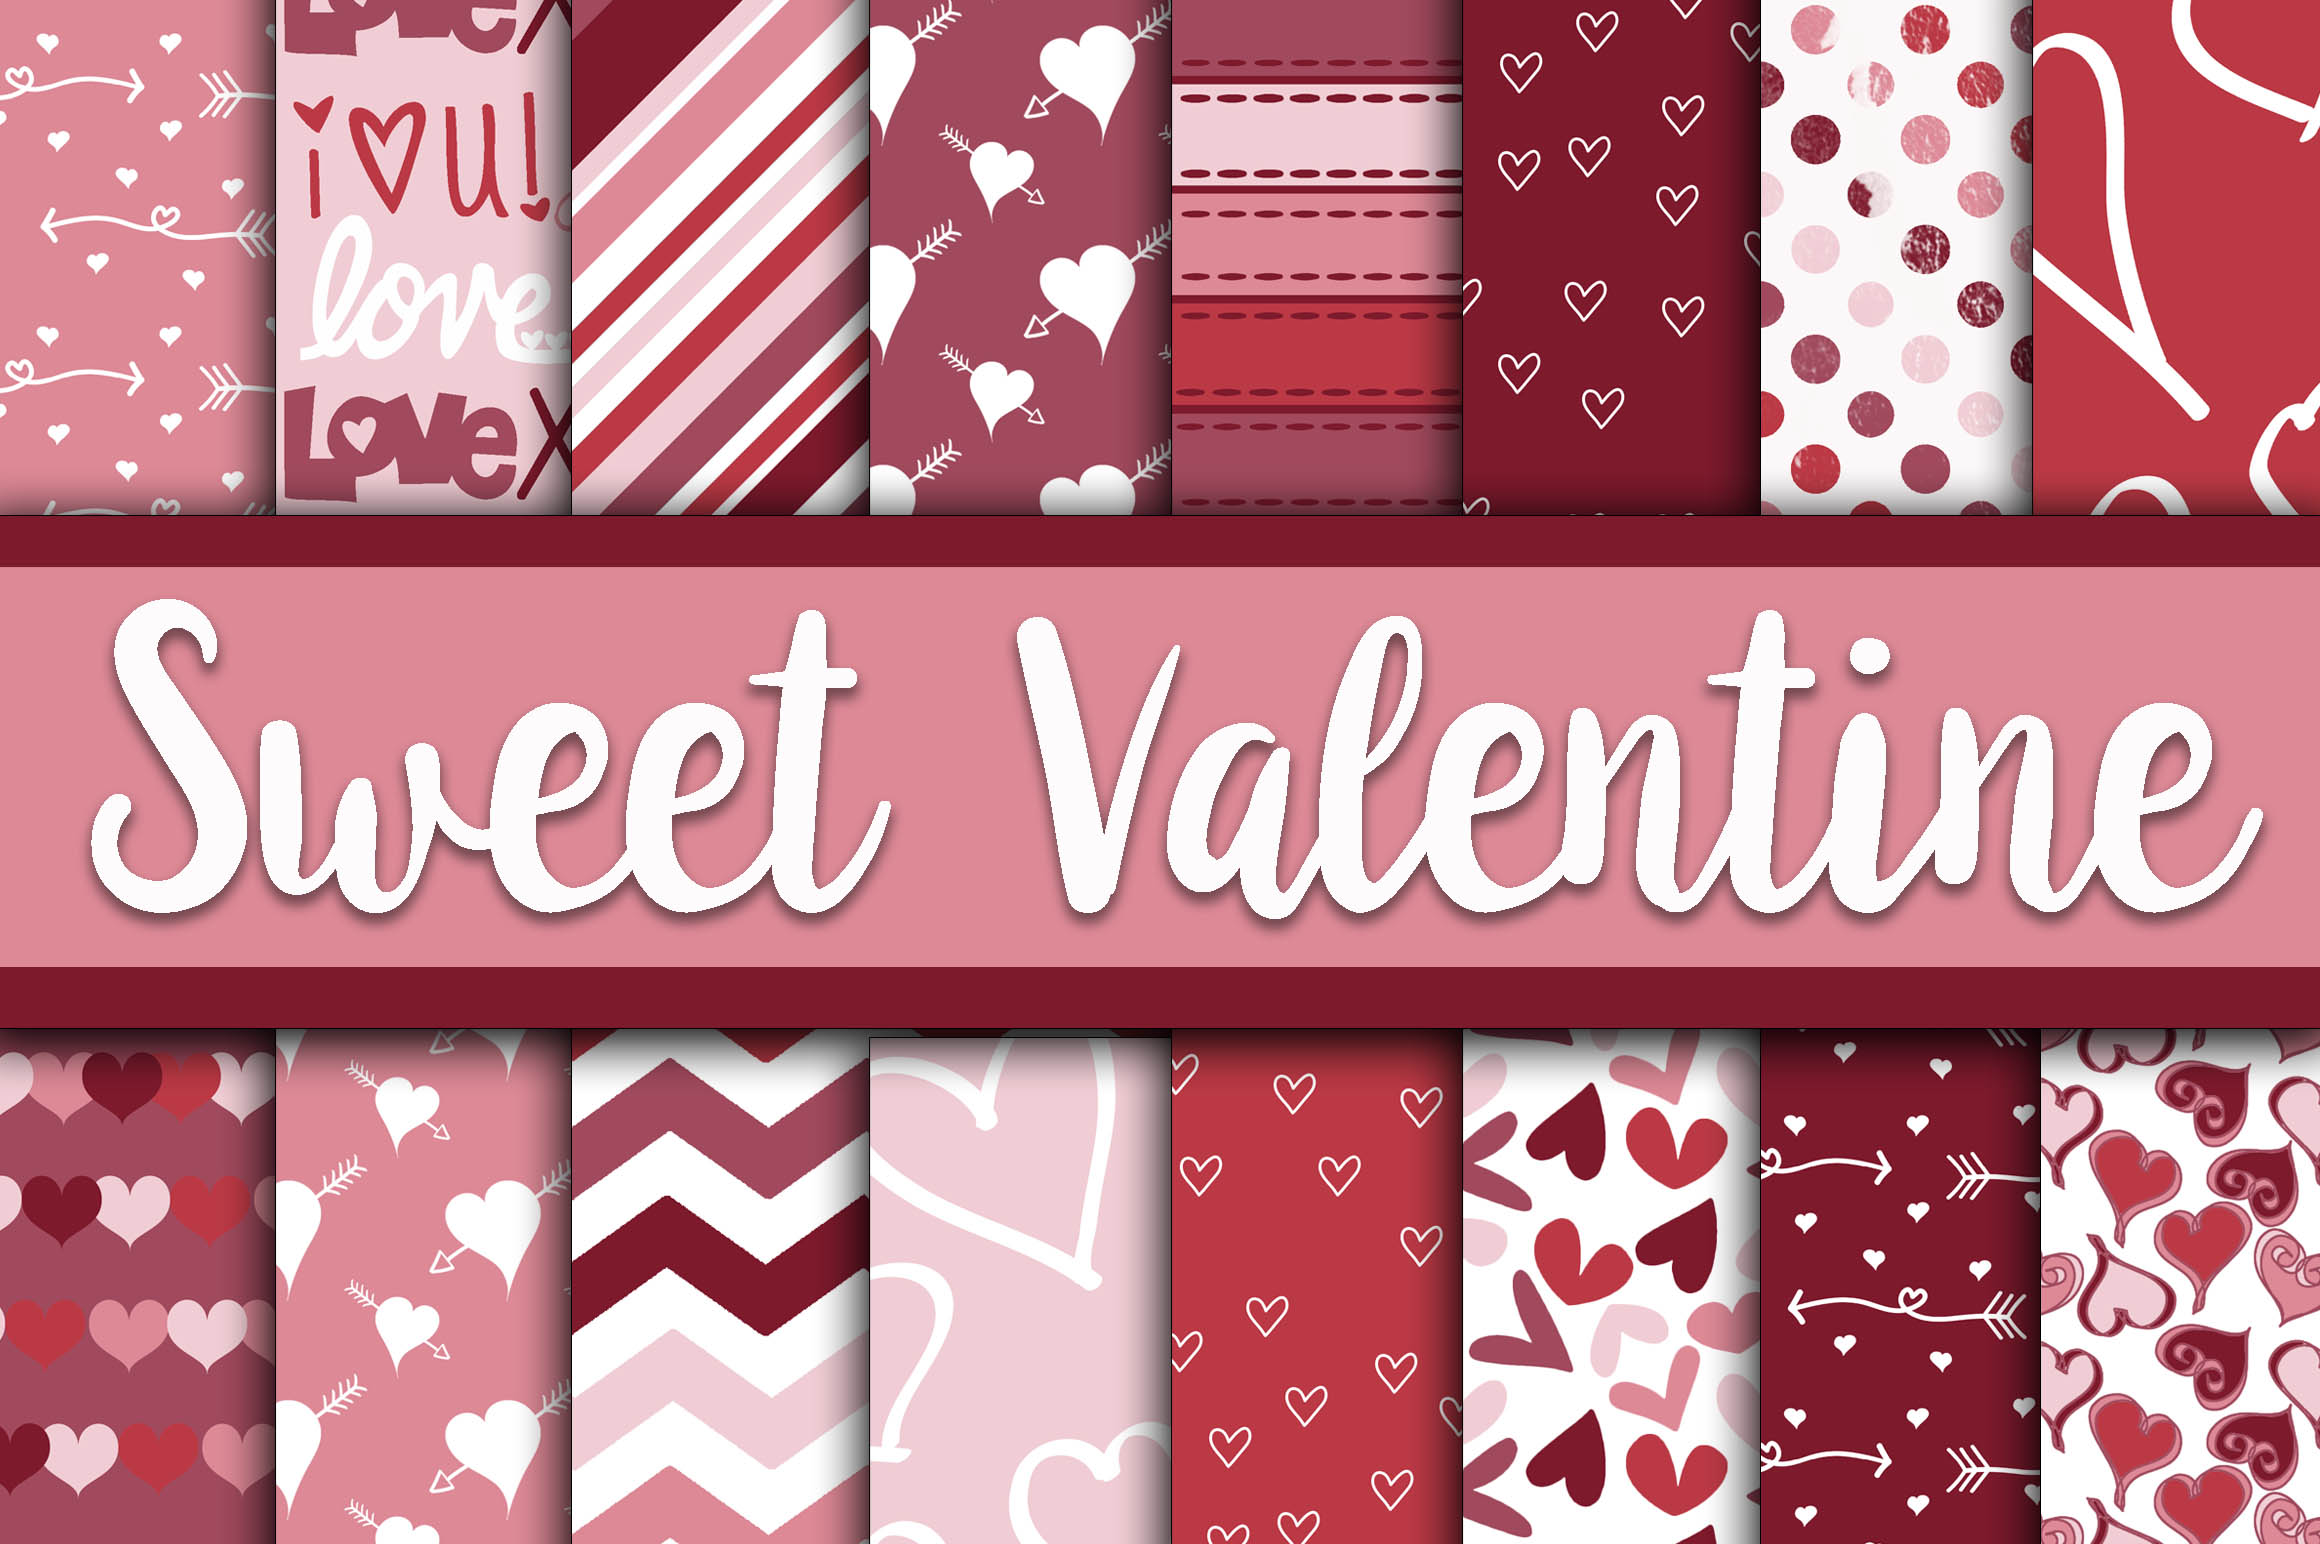 Sweet Valentine Digital Paper Graphic By oldmarketdesigns Image 1